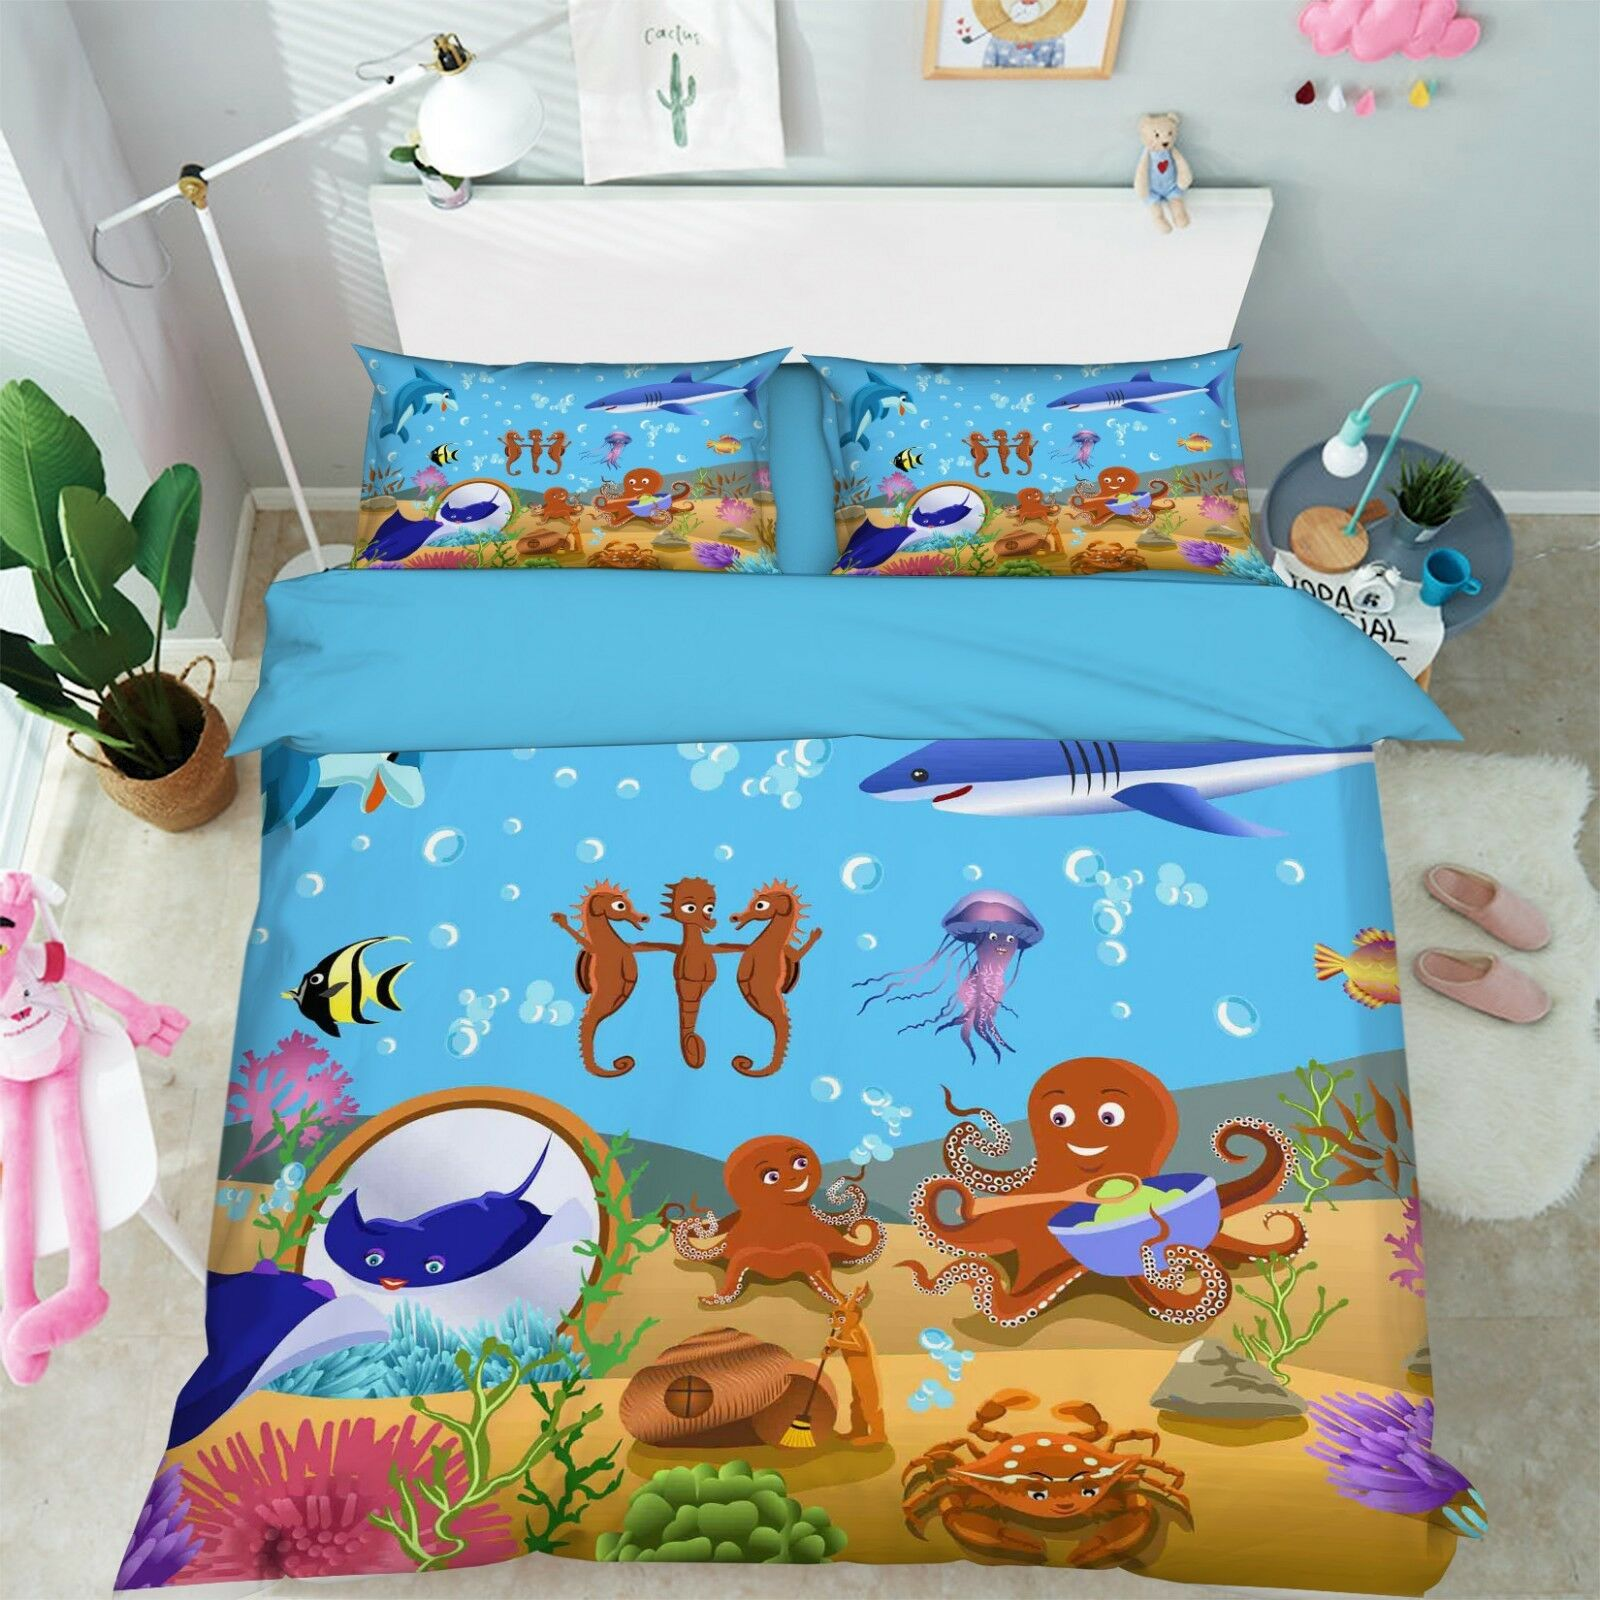 3D Ocean Fish 657 Bed Pillowcases Quilt Duvet Cover Set Single Queen AU Carly